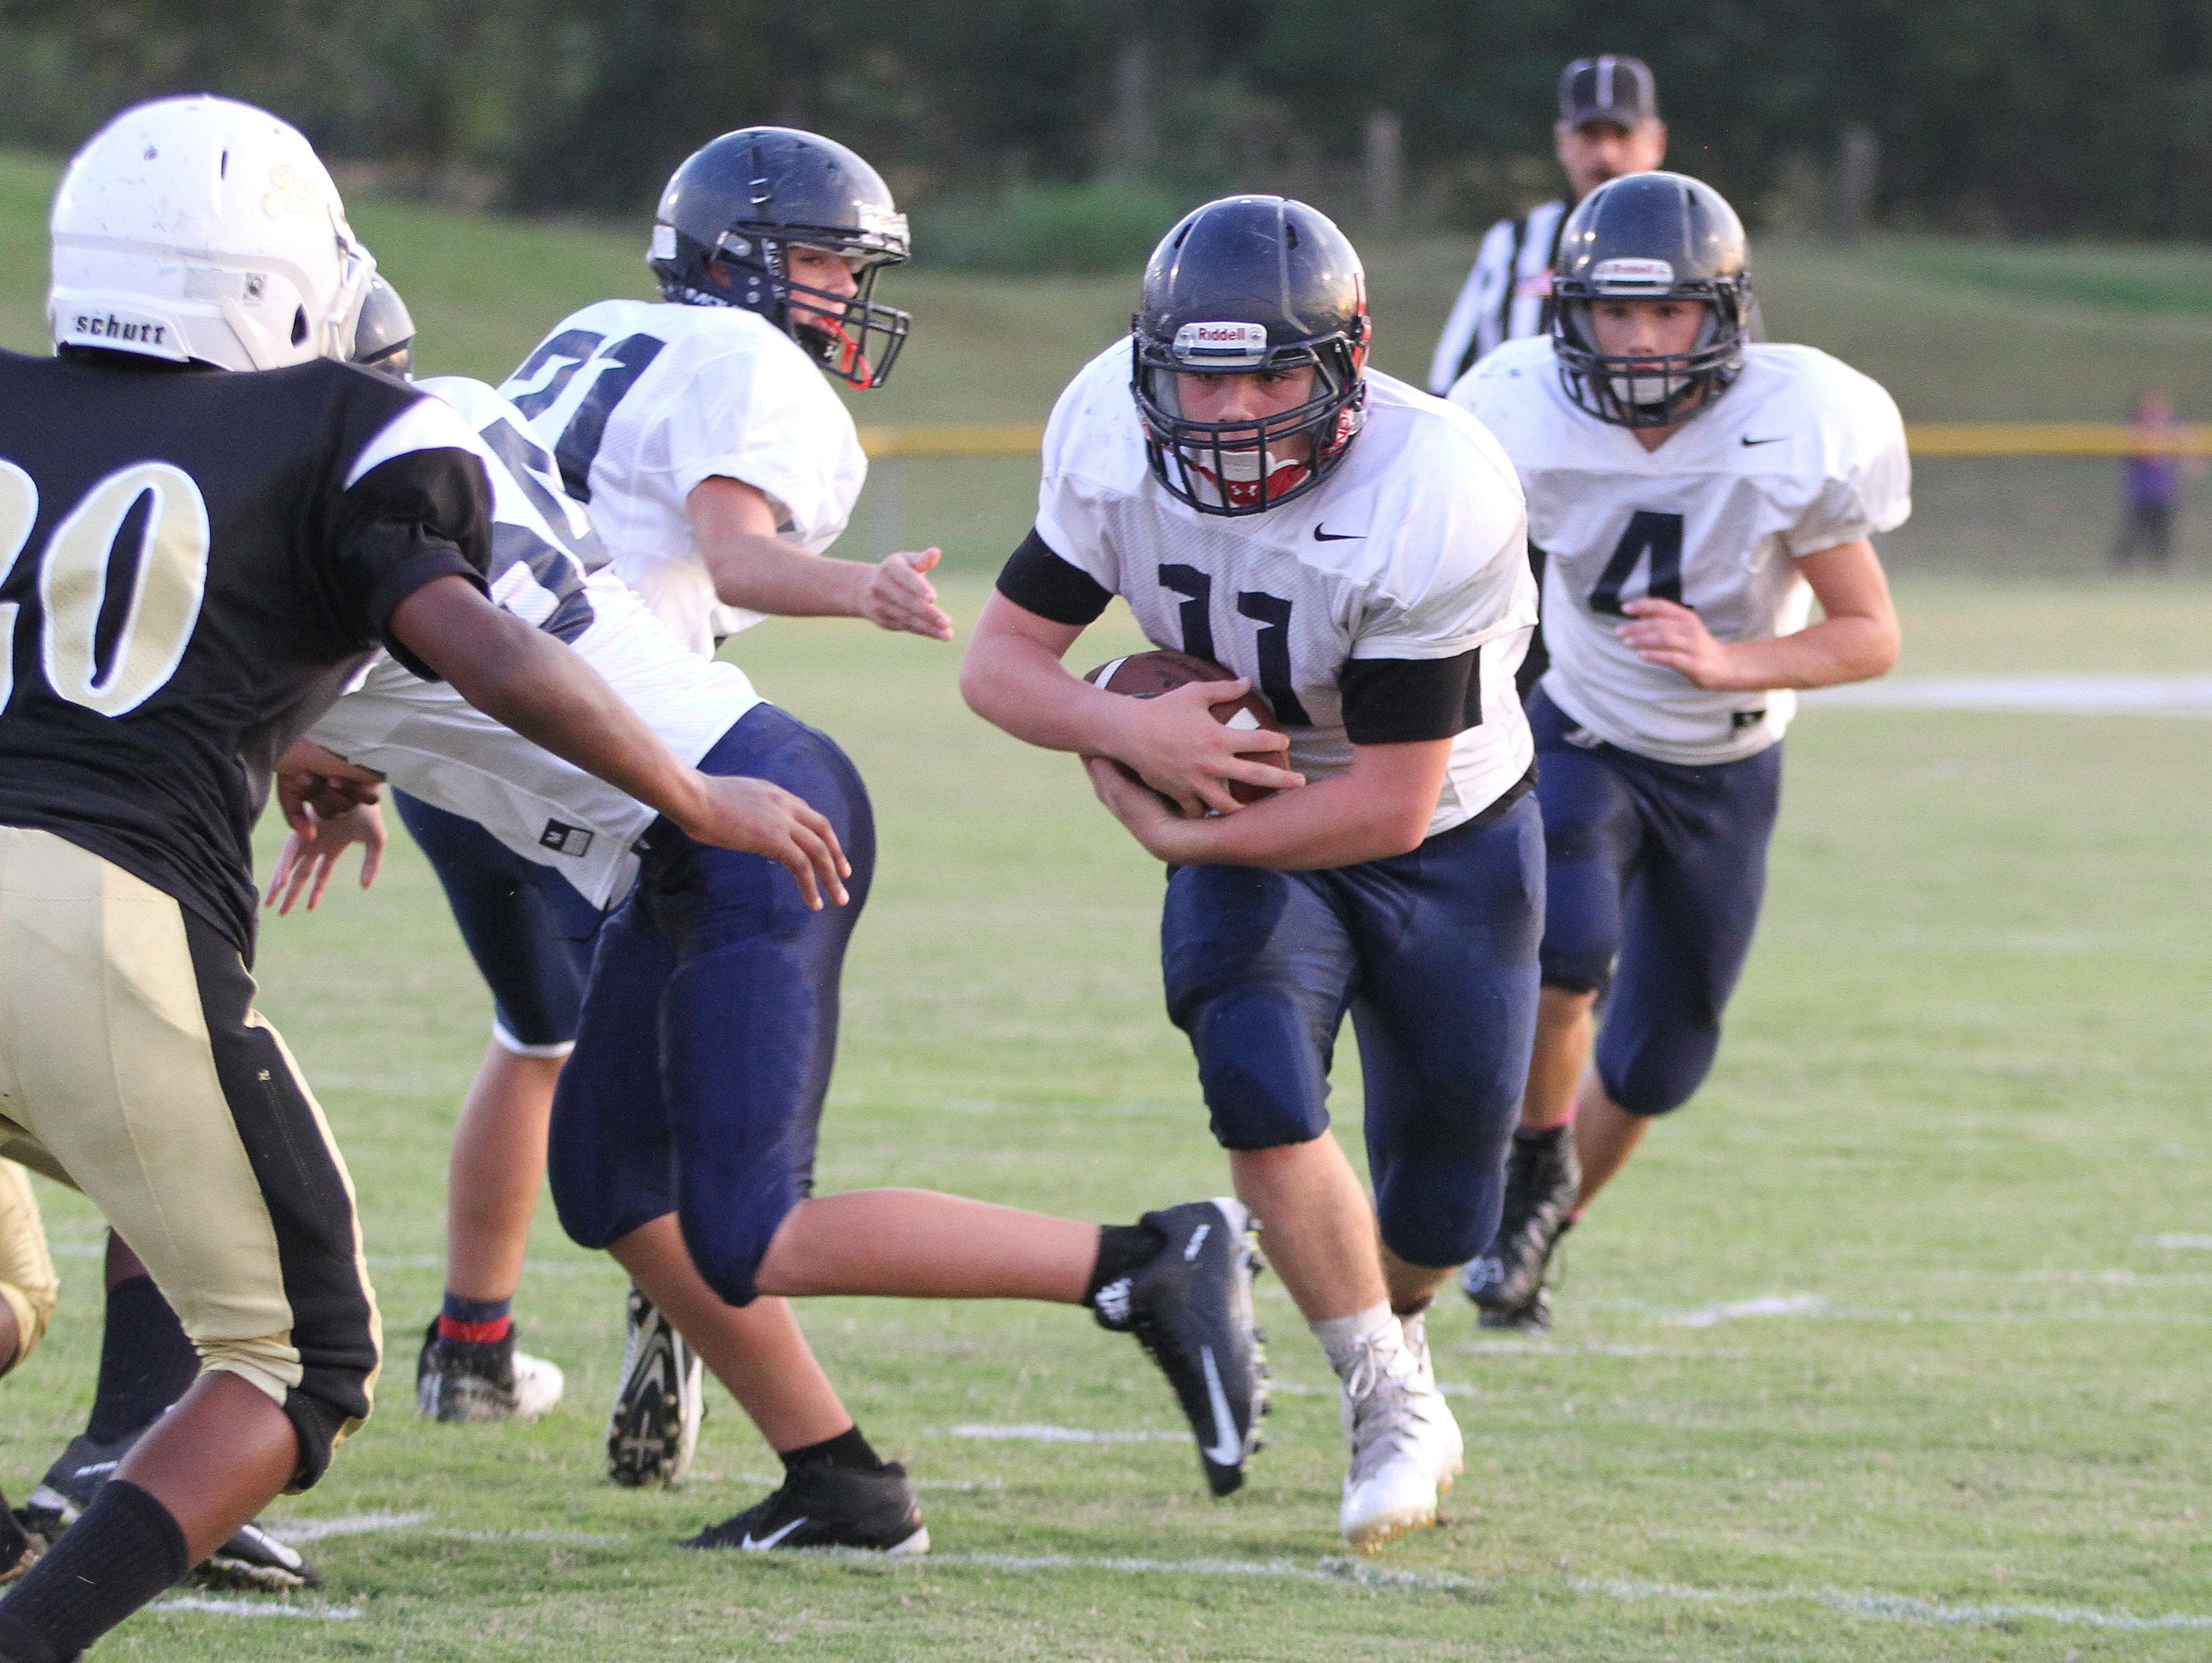 Jacdson Mapes scored Heritage's first touchdown in the Patriots 22-8 victory over Springfield.